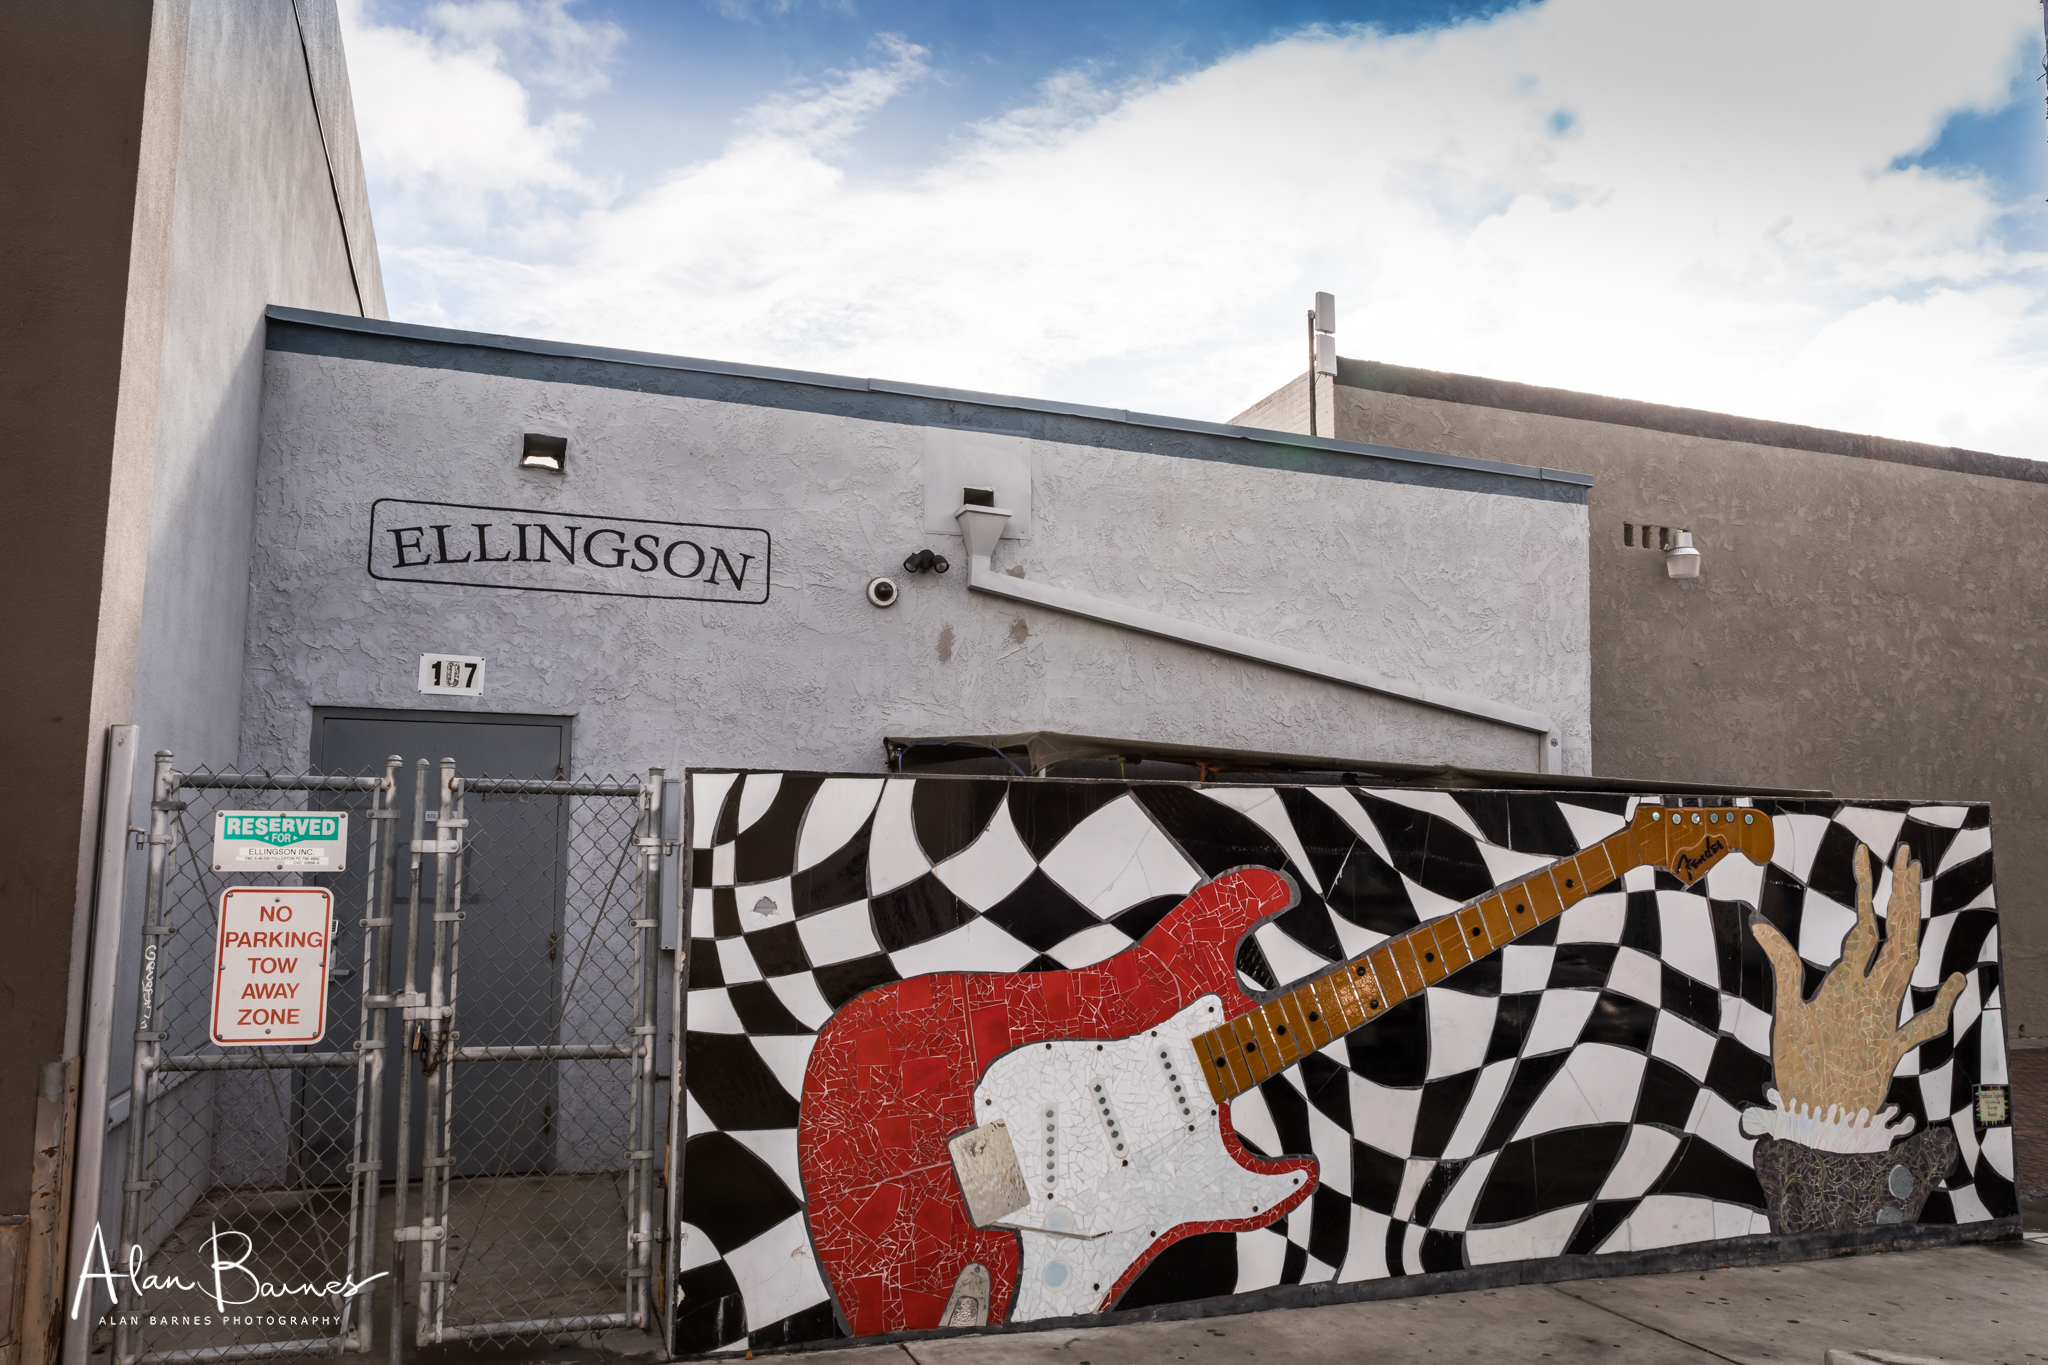 The rear of Leo Fenders workshop in Fullerton. A mosaic has been added as a tribute to Fender.